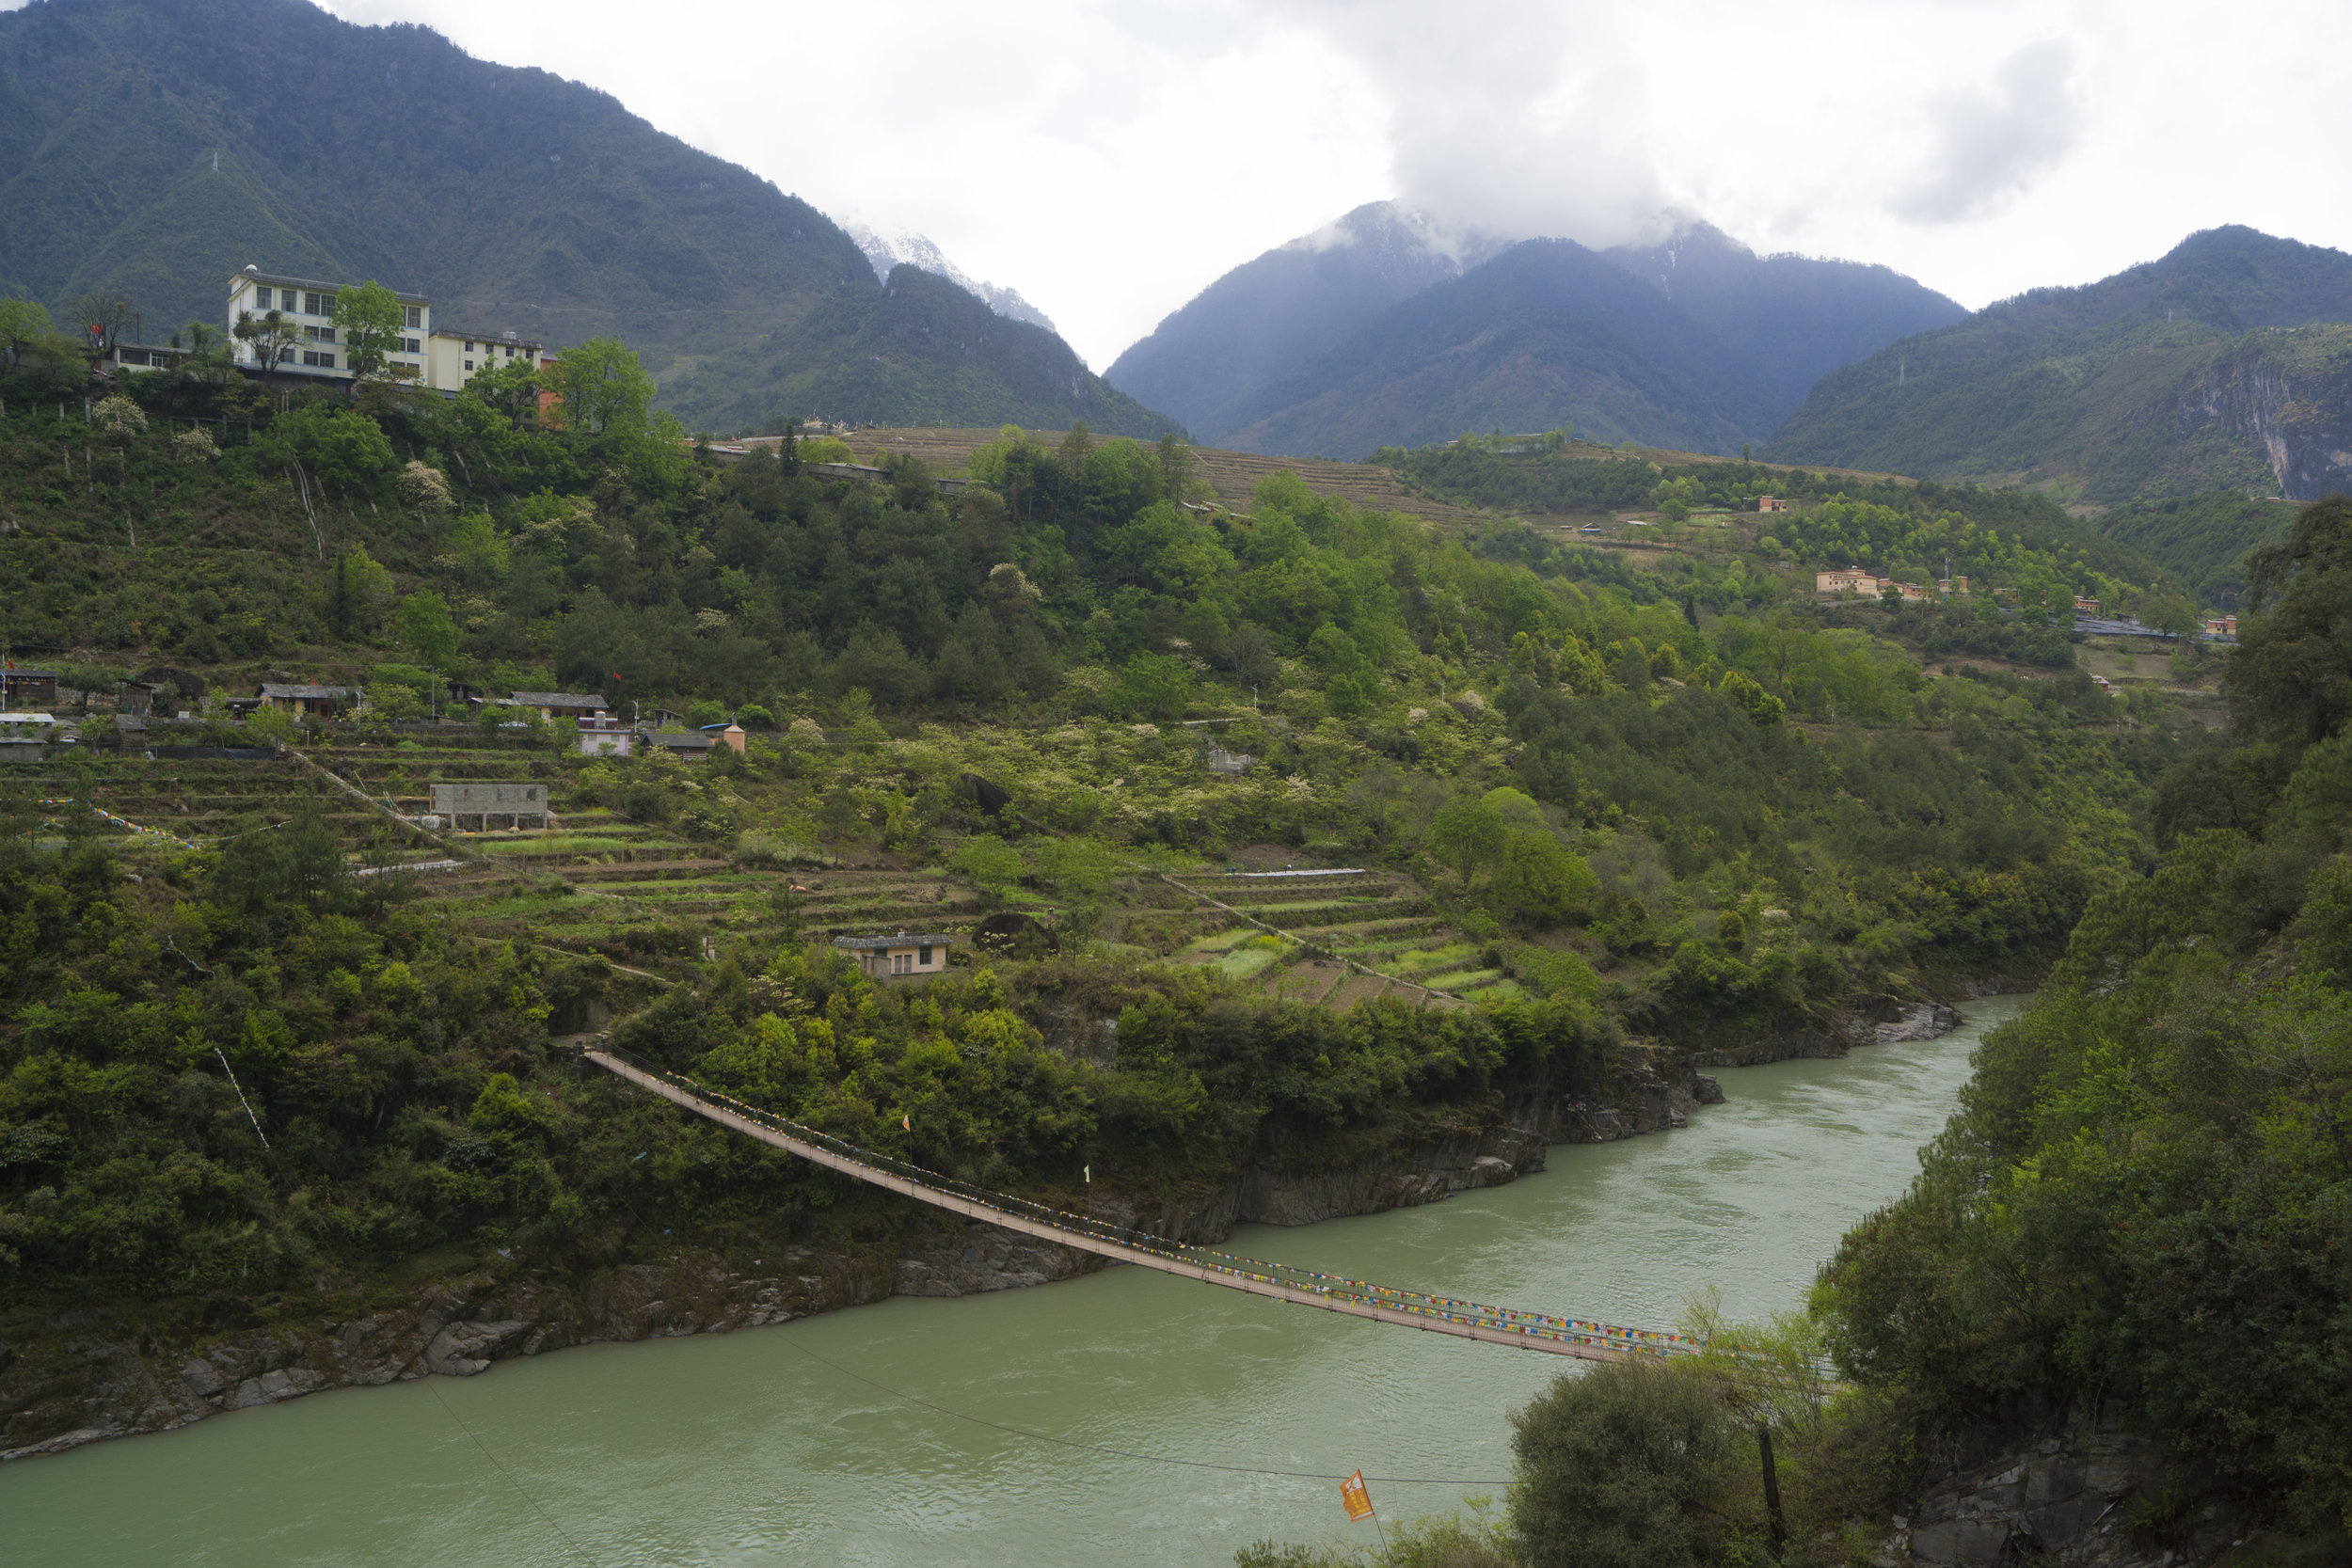 The Nujiang River